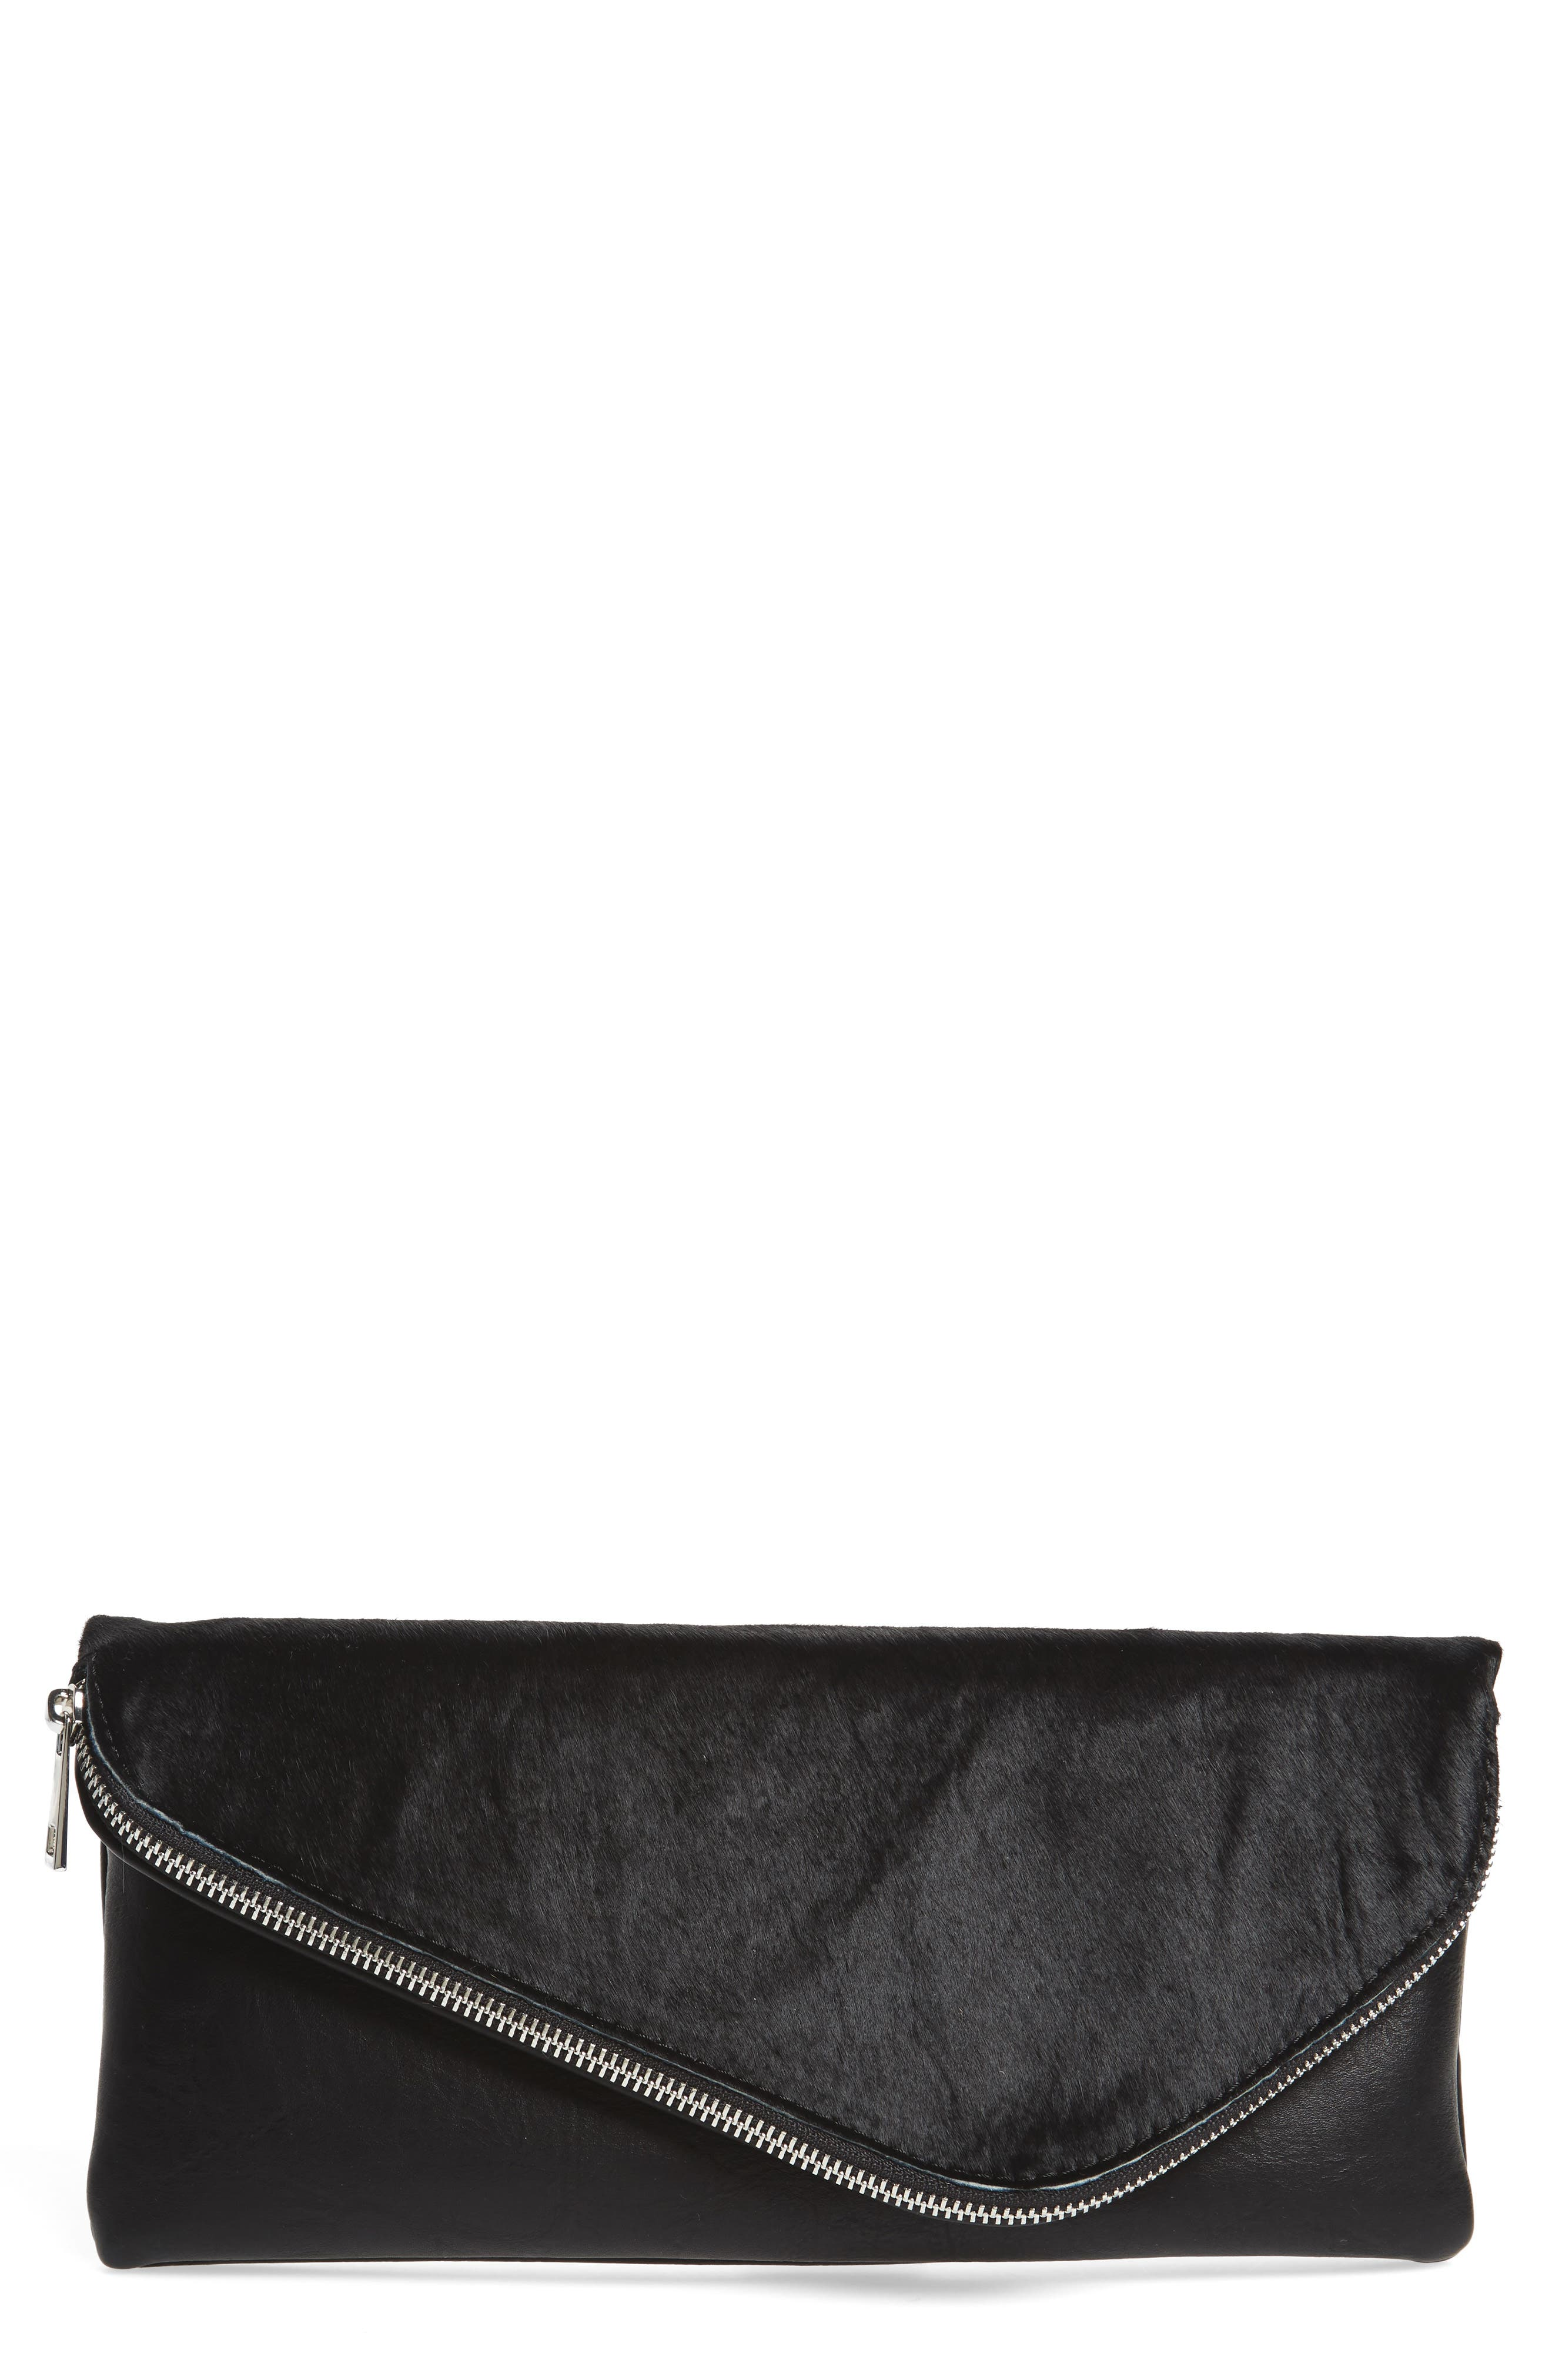 Tammi Genuine Calf Hair & Faux Leather Foldover Clutch,                         Main,                         color, Black